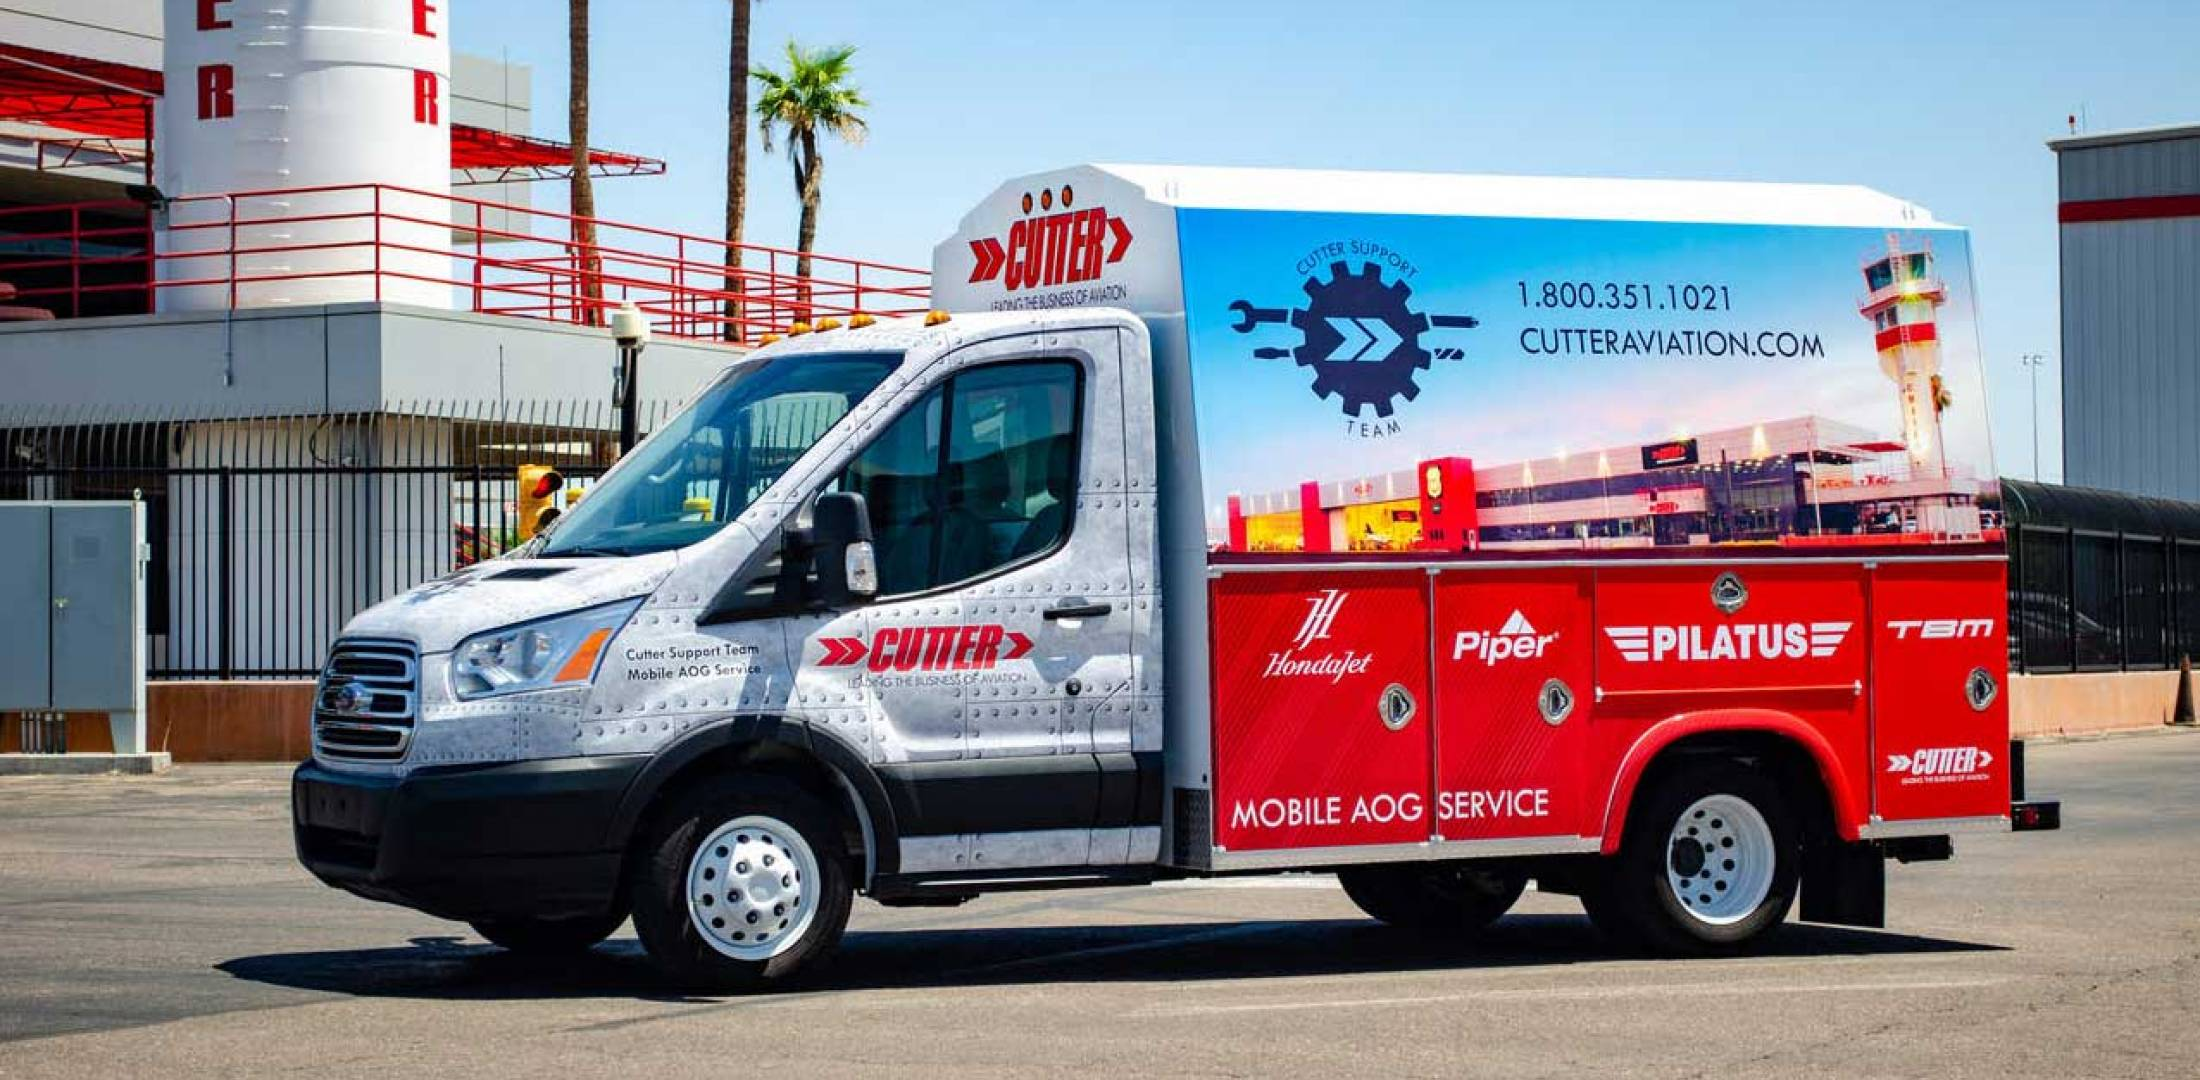 Cutter's new mobile AOG unit